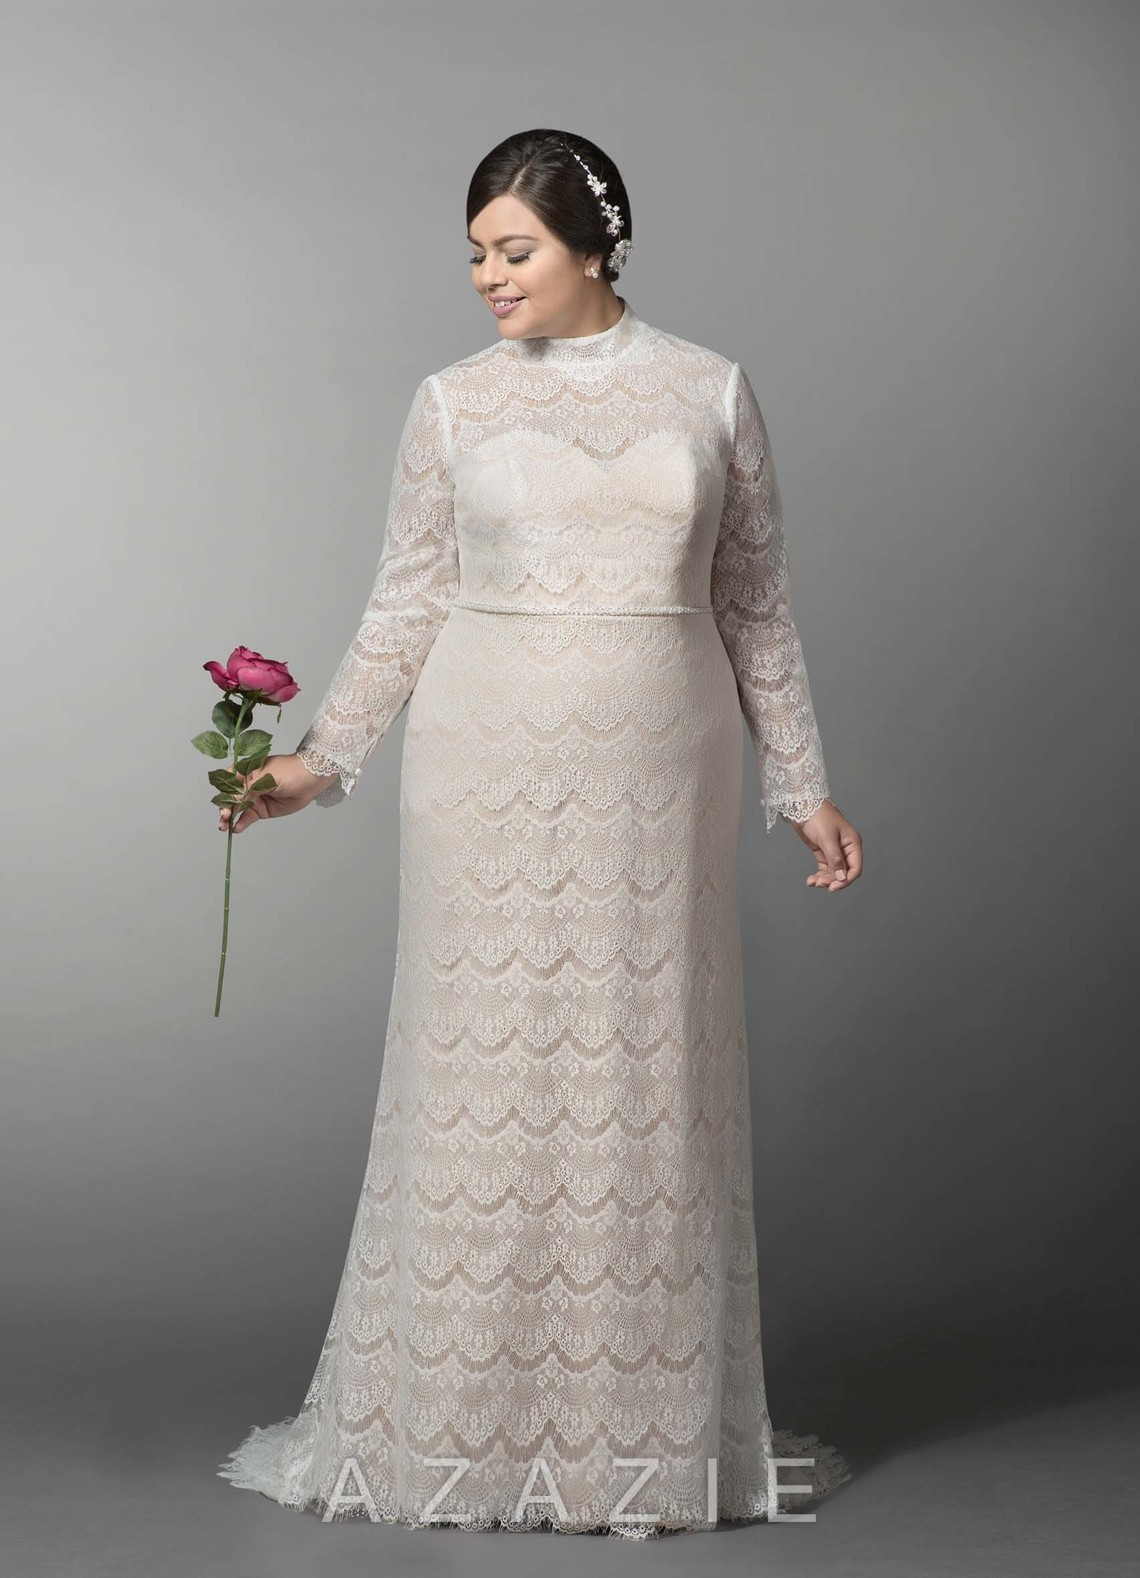 Azazie Ozette BG Wedding Dress - full length dress with sleeves